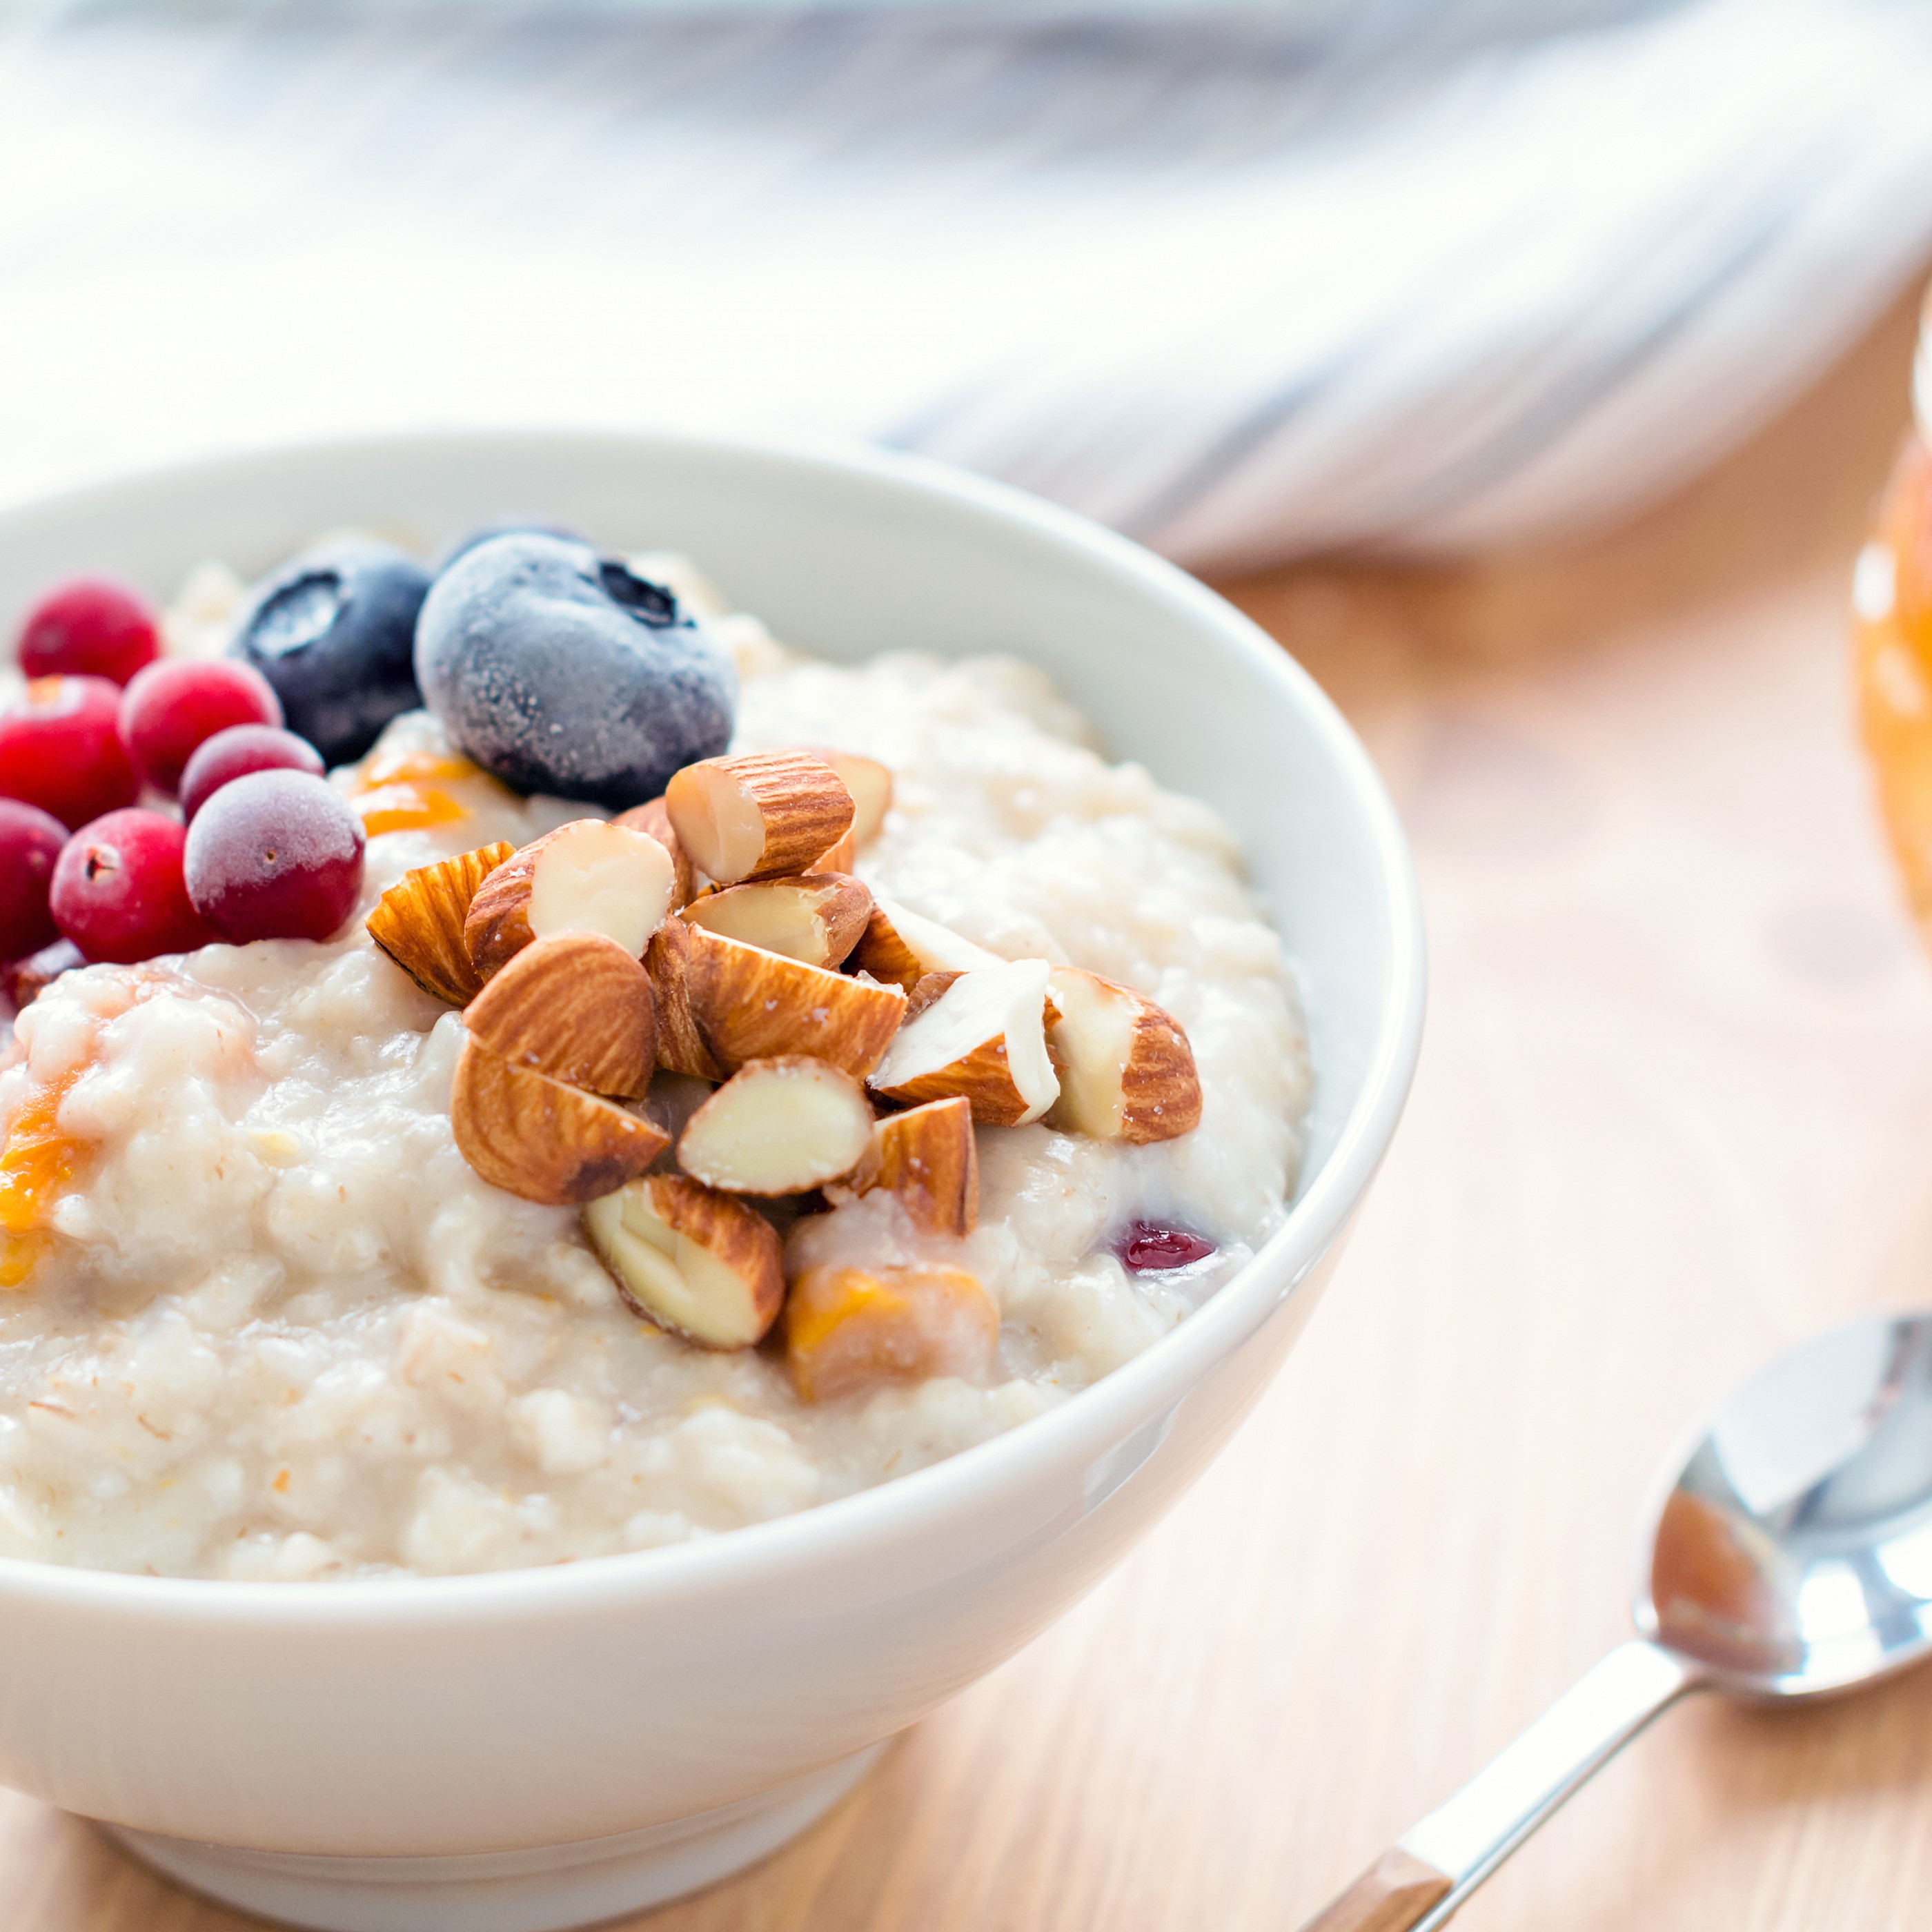 Le porridge multivitaminé et fruité <br>